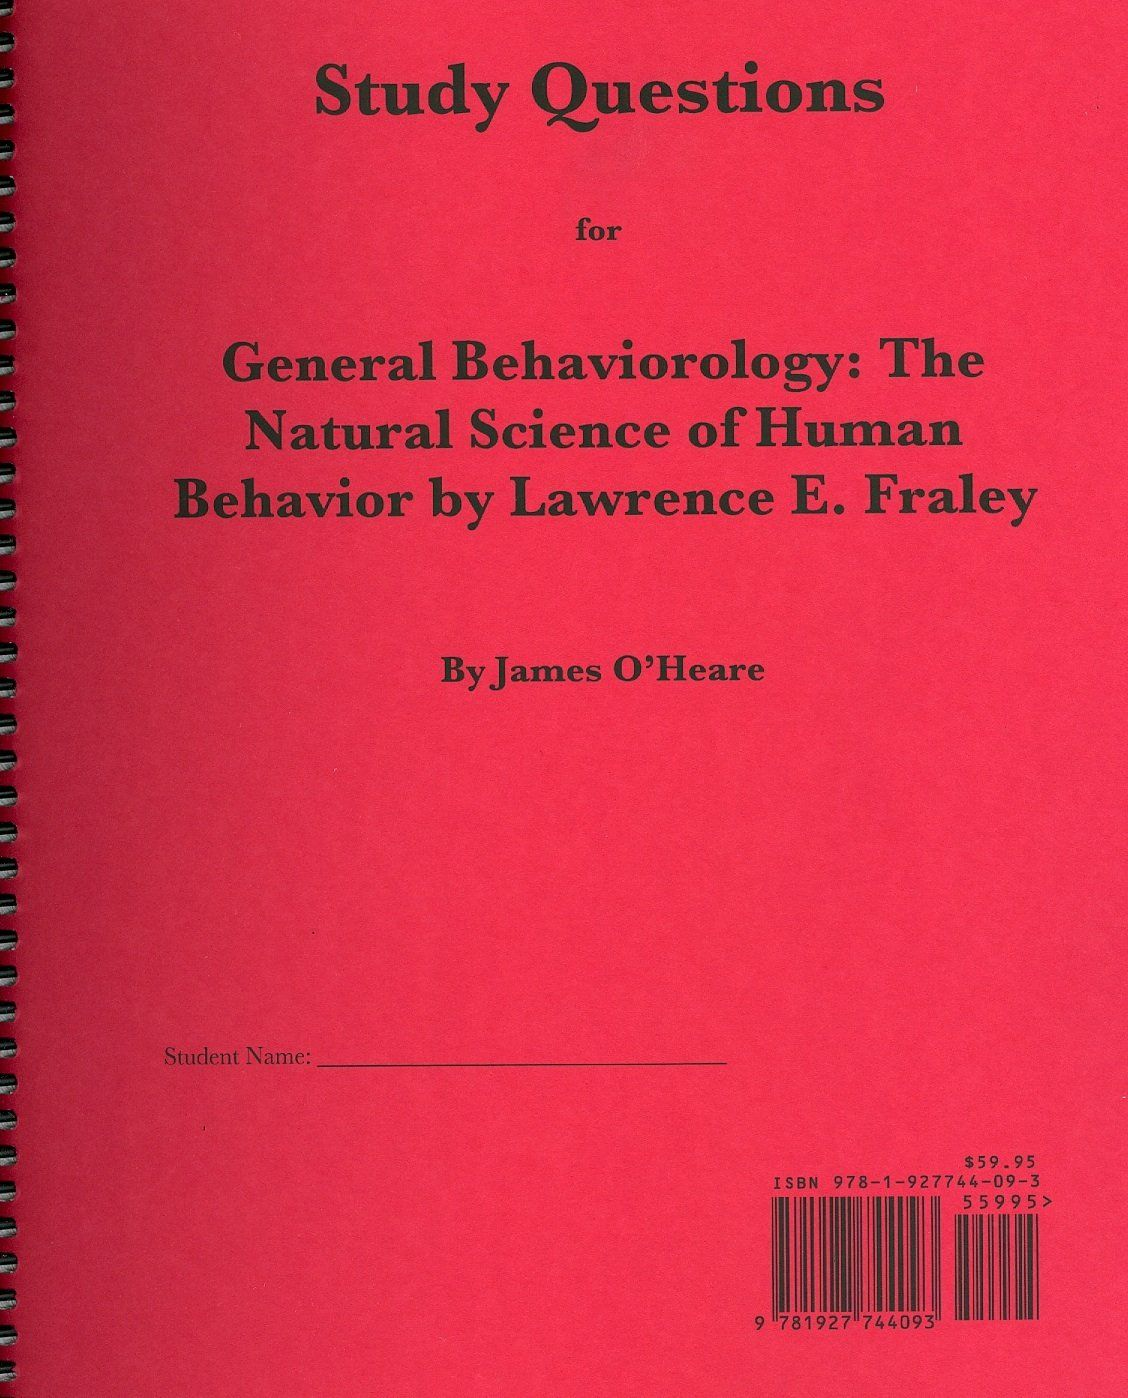 study question books behaviorology 2013 study questions for lawrence e fraley s general the natural science of human behavior by james o heare ottawa behavetech